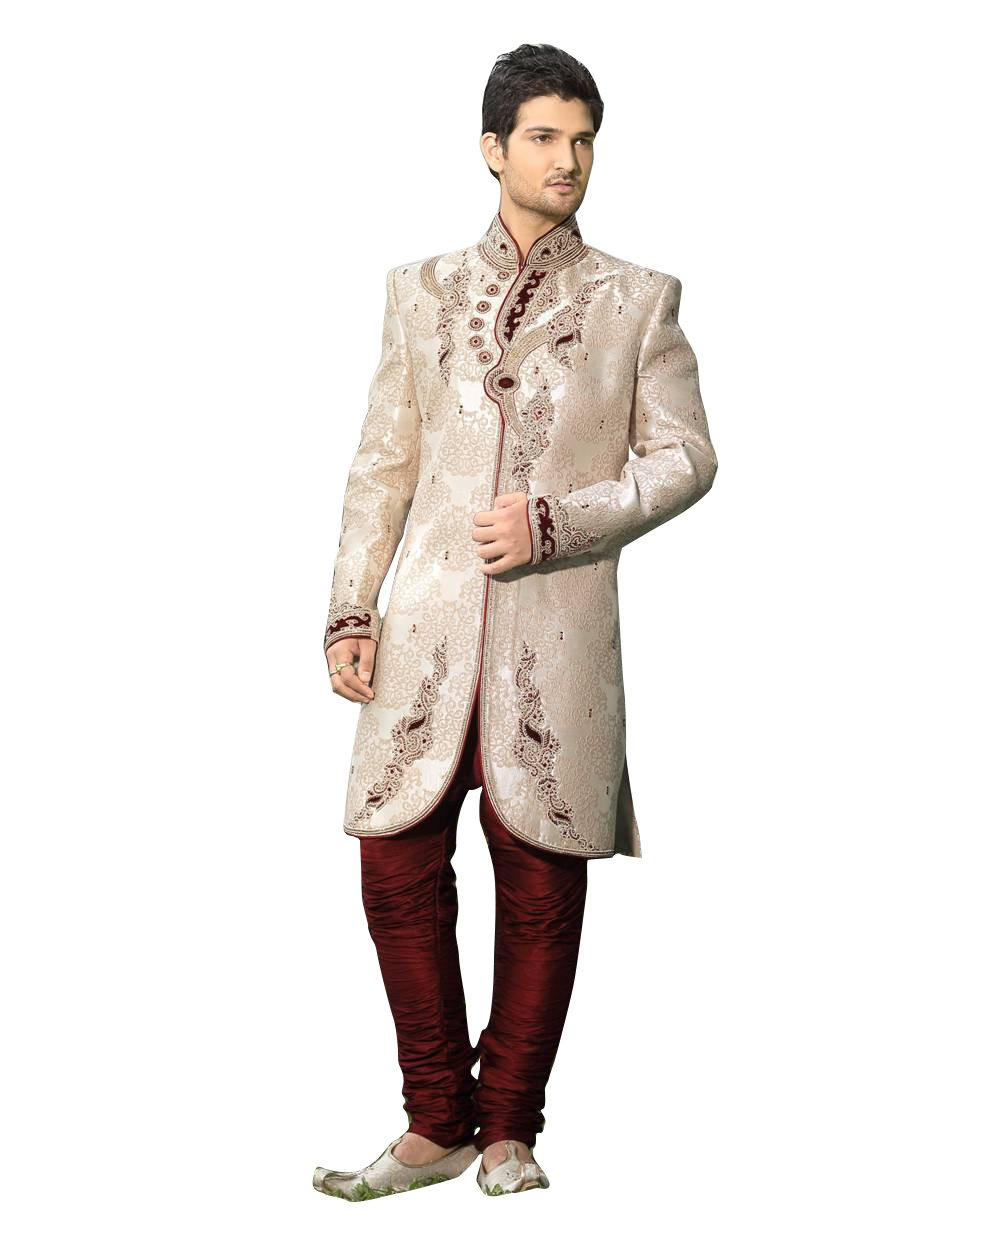 Ethnic Off White Jacquard Silk Indian Wedding Sherwani For Men by Saris and Things